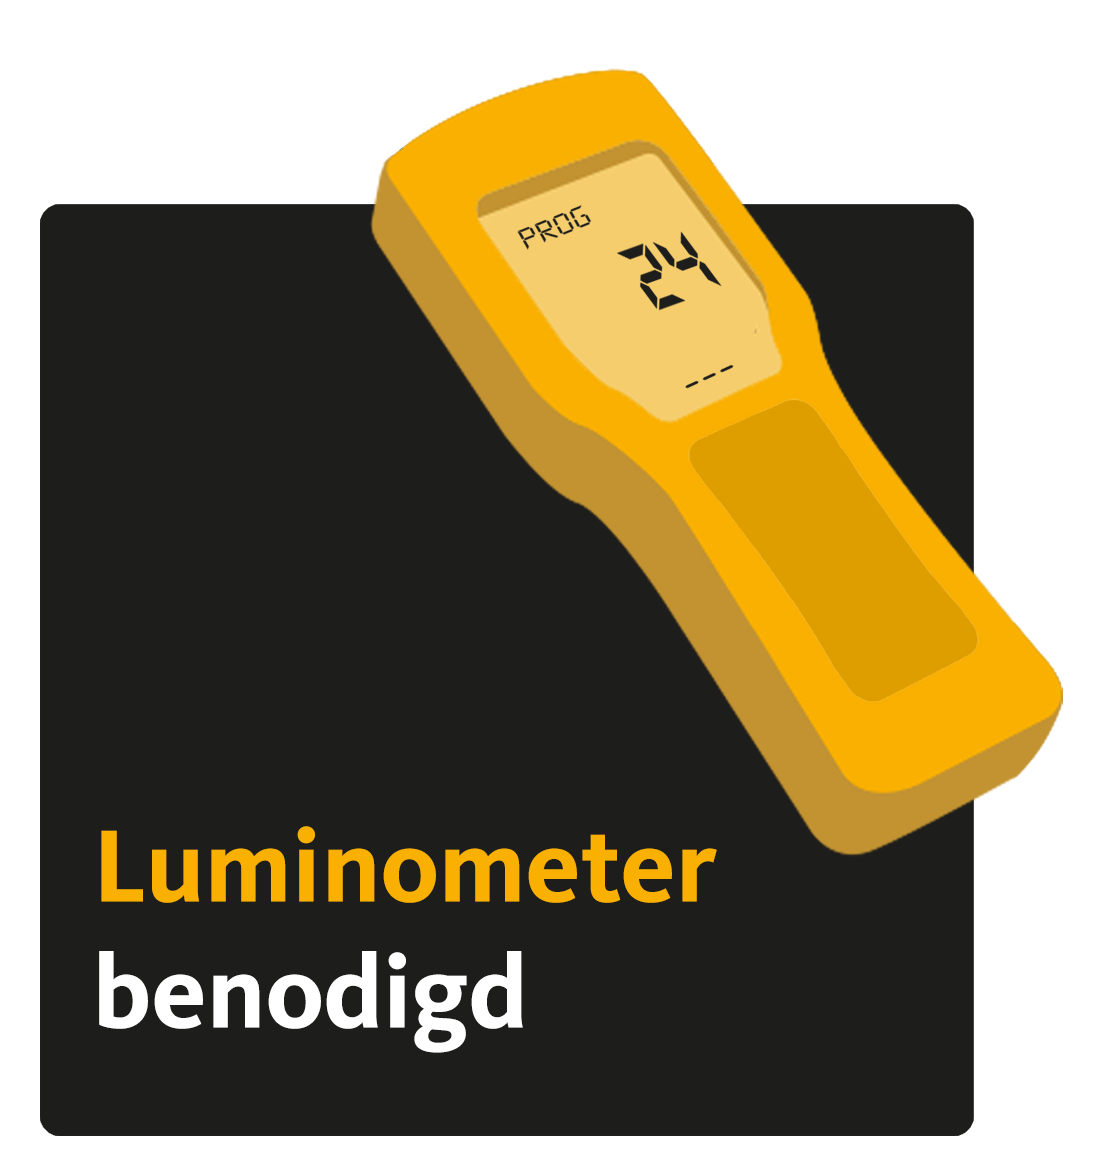 Luminometer benodigd